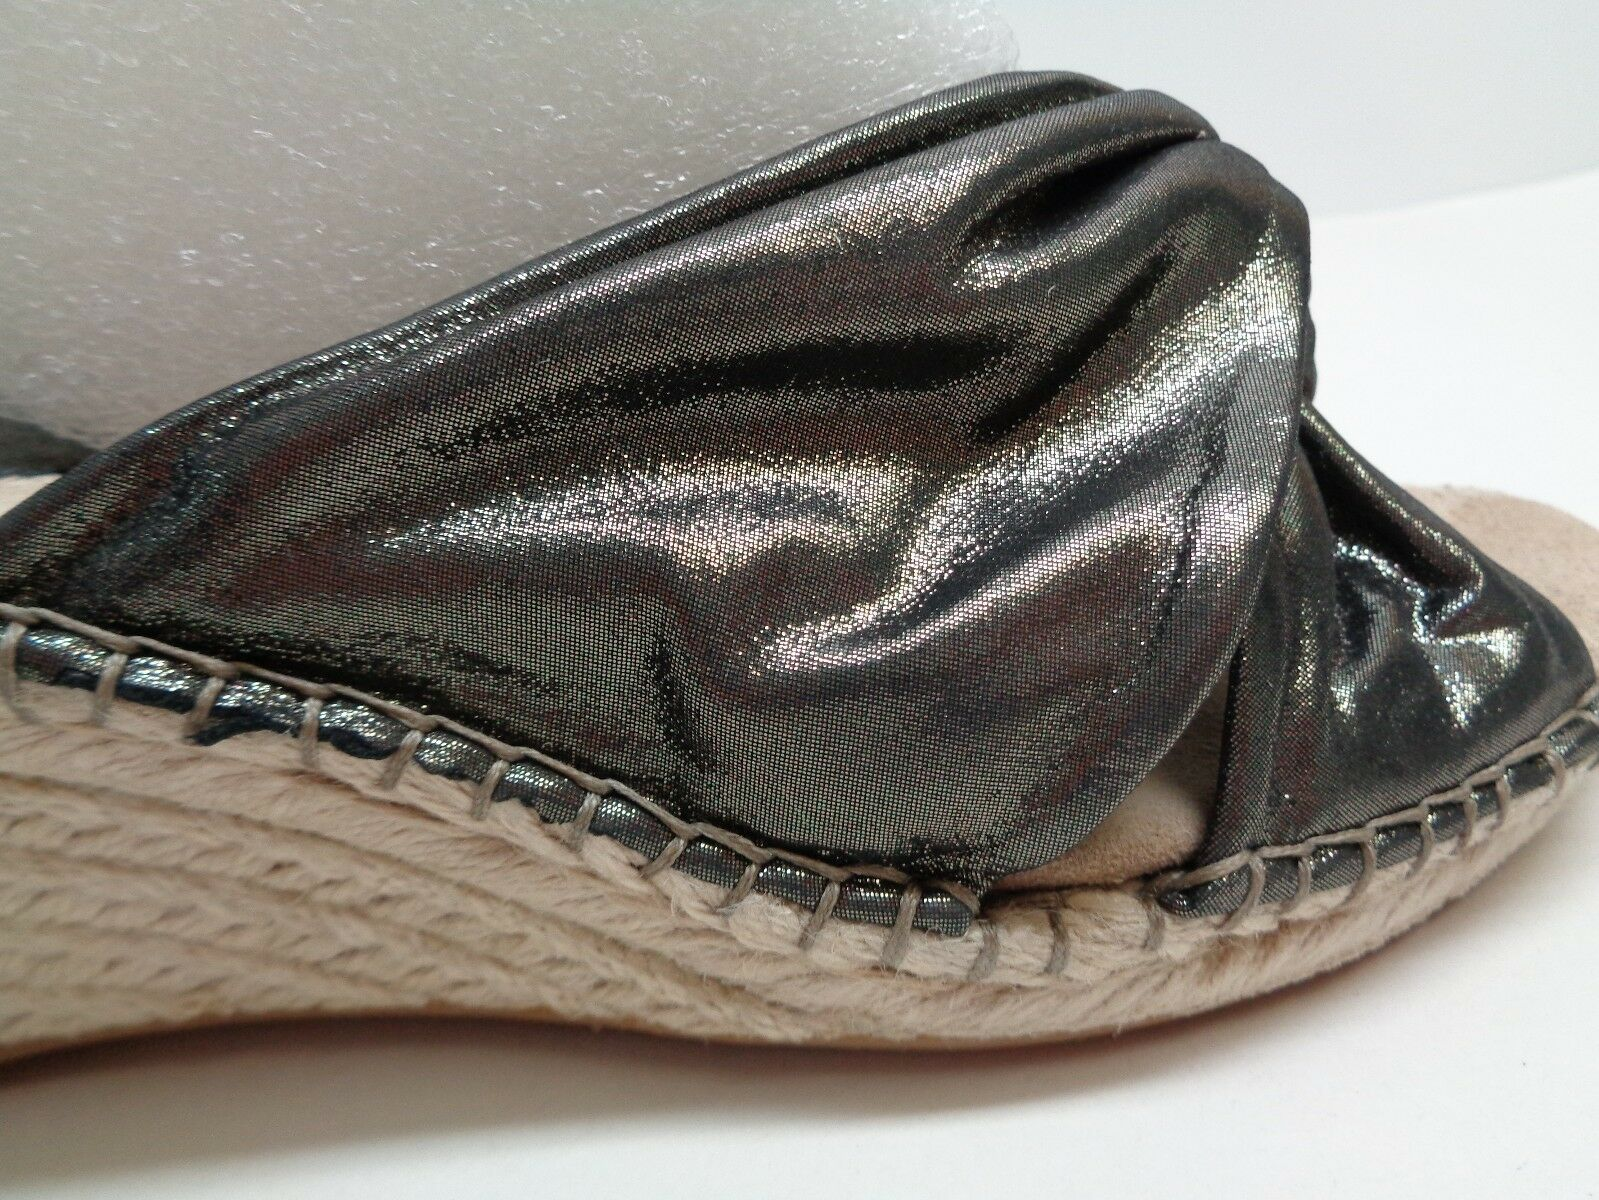 Johnston & Murphy Dimensione Dimensione Dimensione 7.5 M AINSLEY Pewter Suede Wedge Sandals New donna scarpe 4d842d